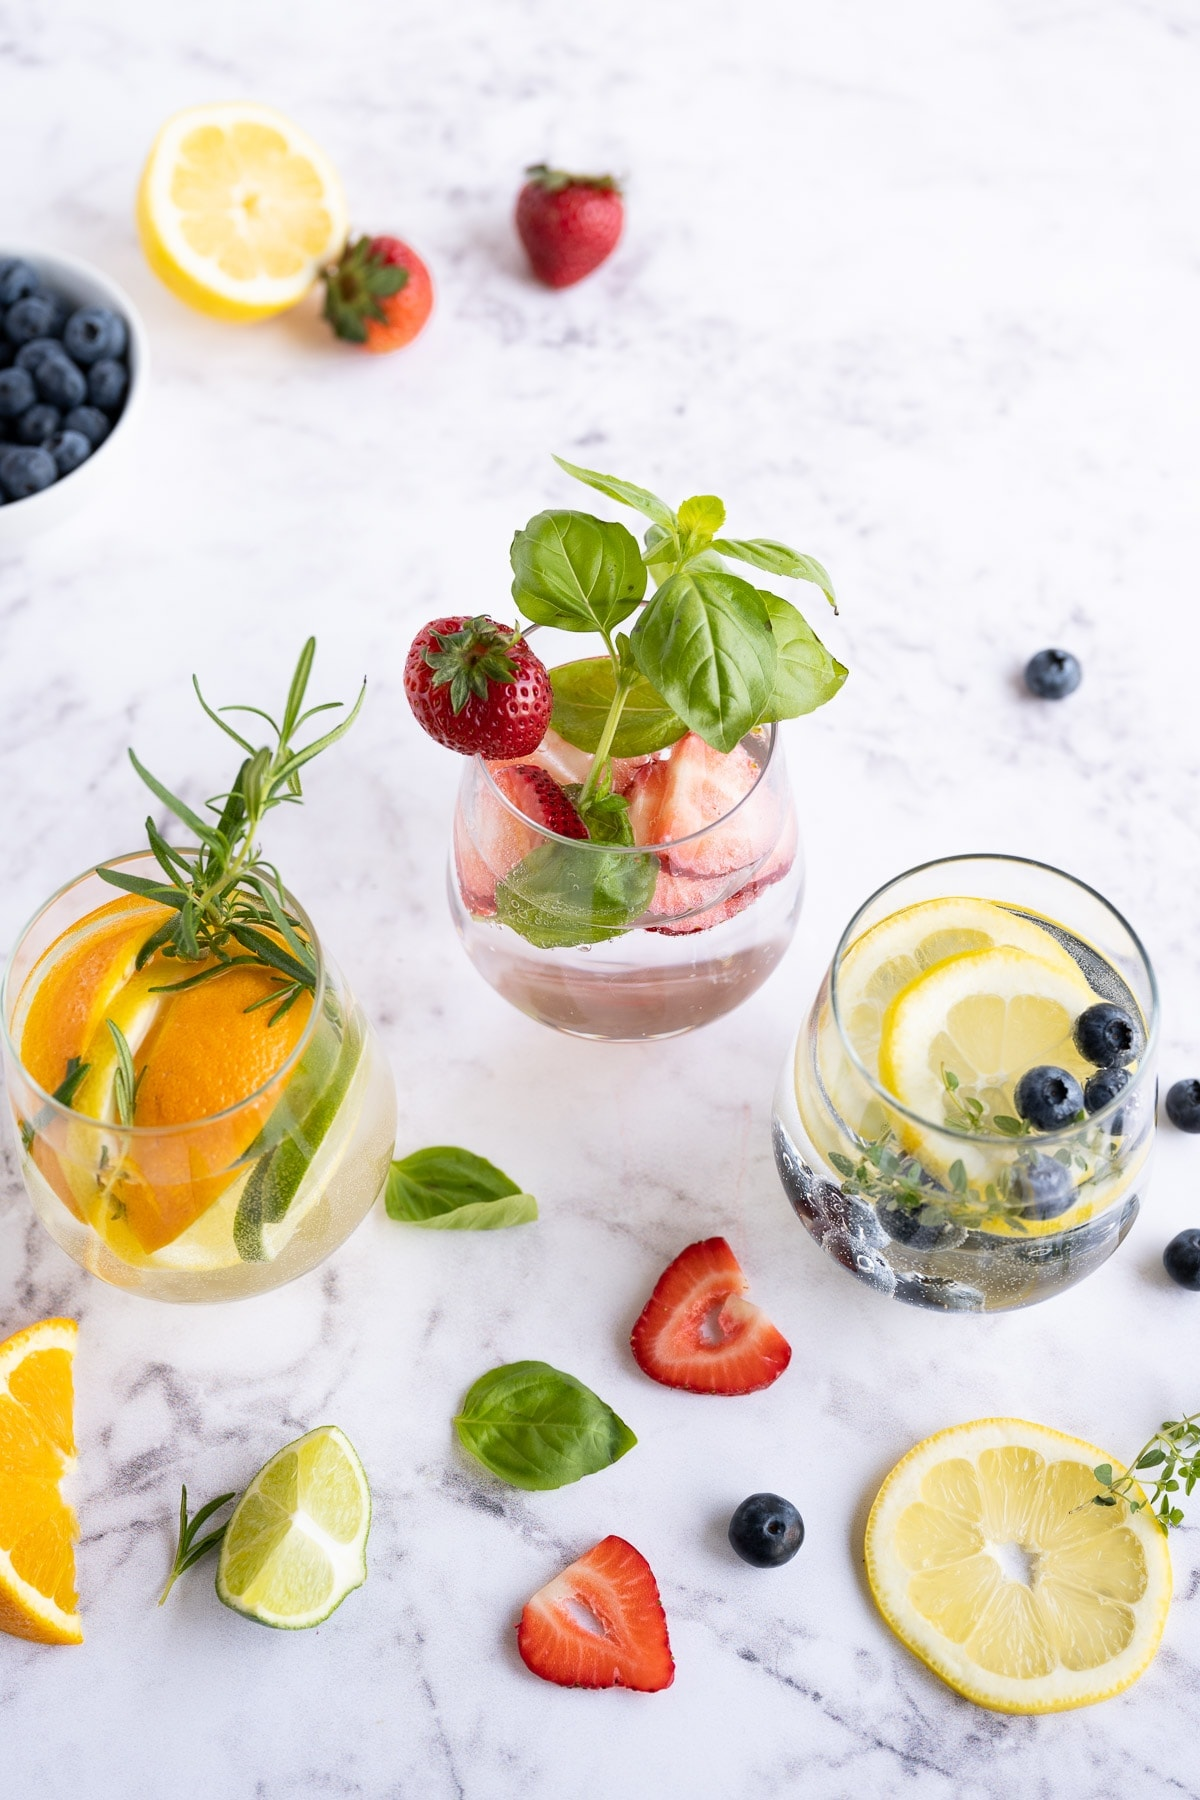 Three glasses with infused water in three glasses with strawberries, citrus fruit, fresh herbs, and blueberries.